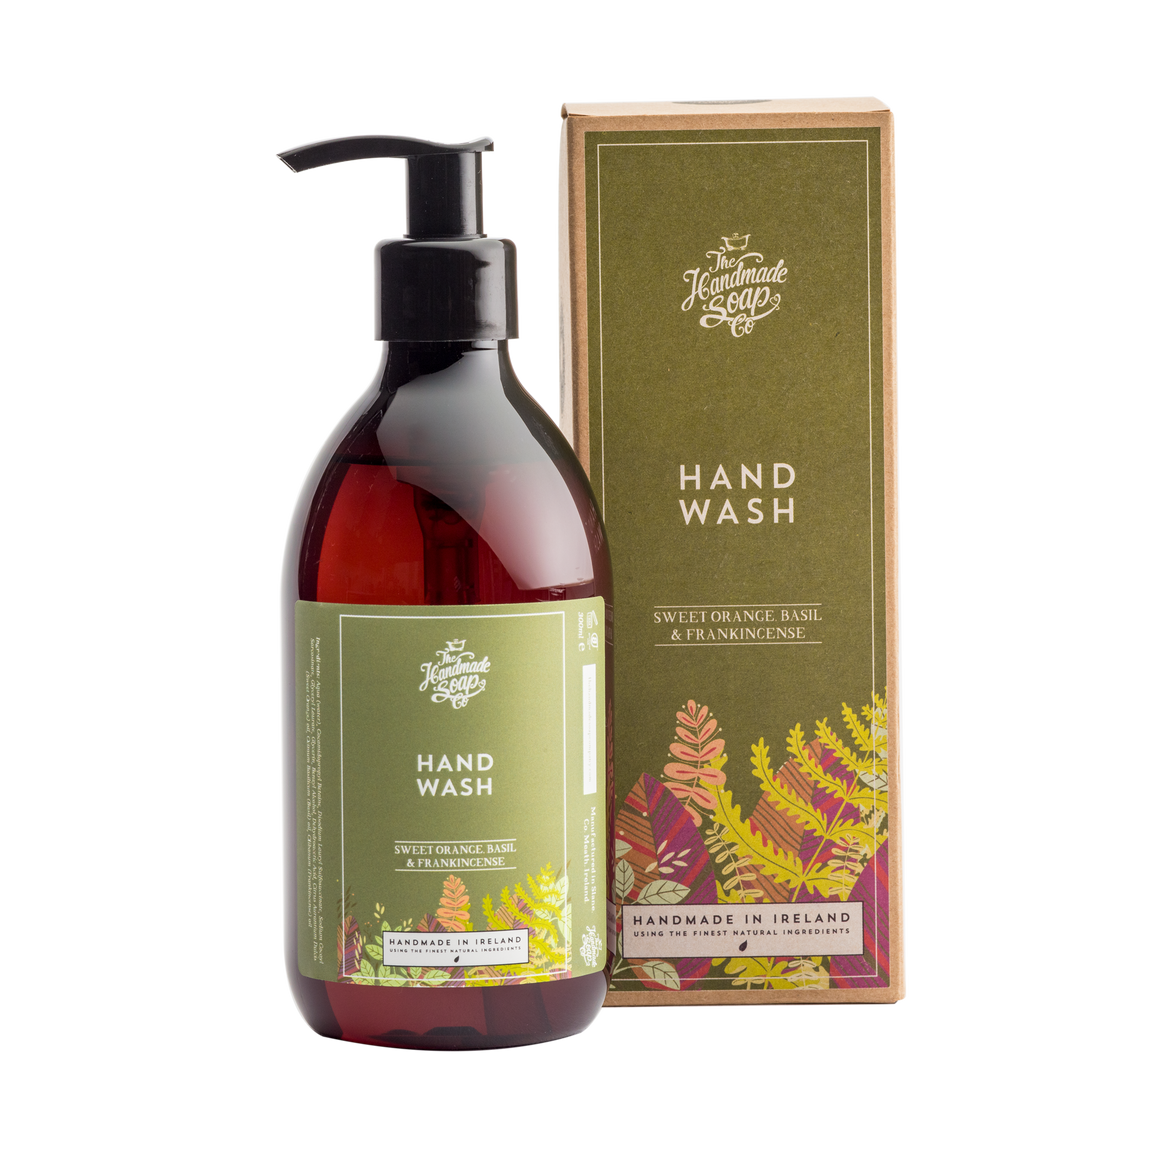 Handmade Soap Co. Sweet Orange, Basil & Frankincense Imported Irish Hand Wash